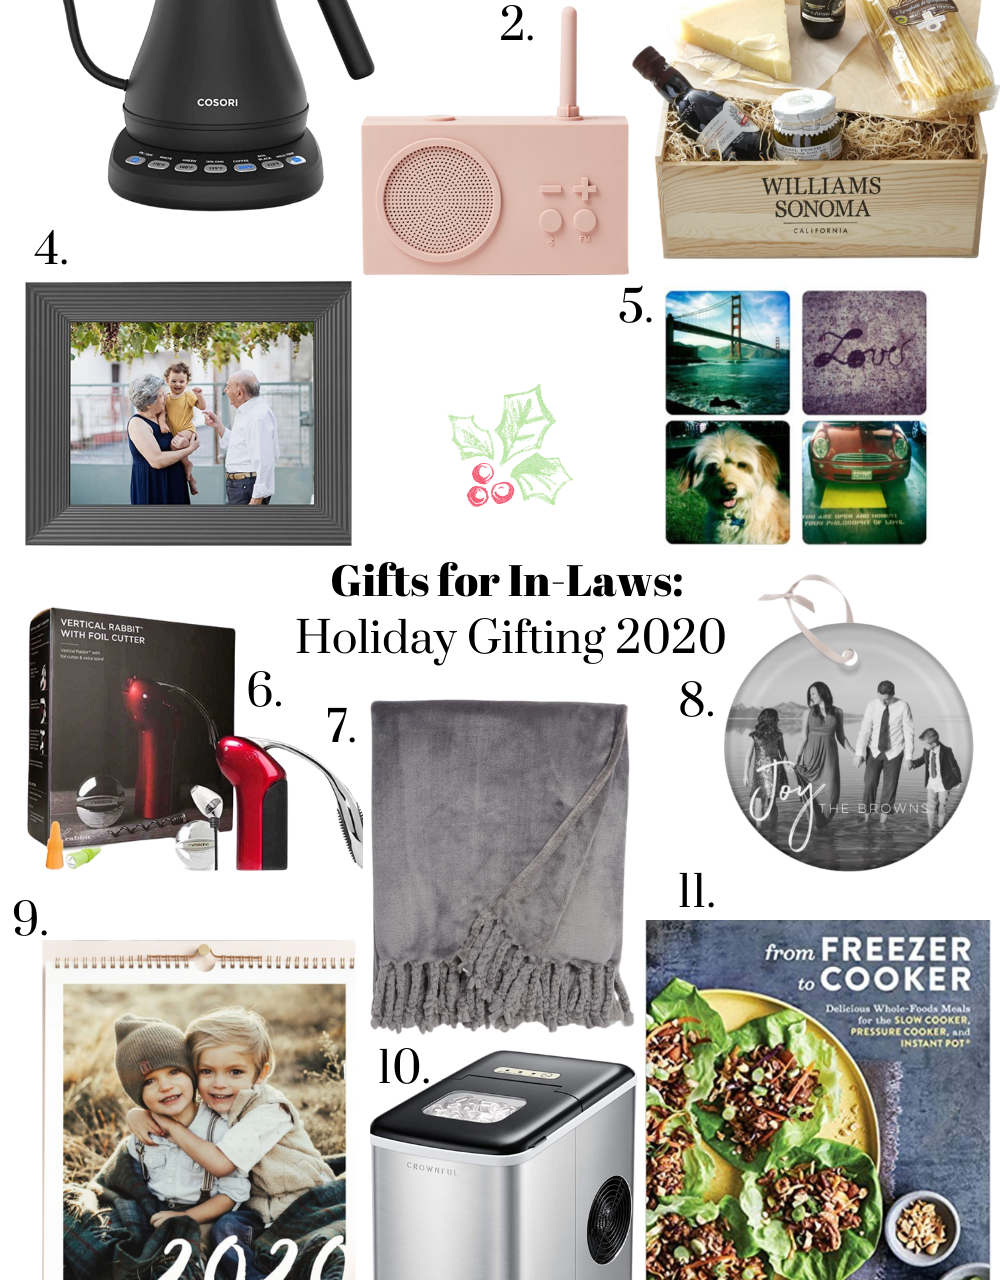 Gifts for In-Laws: Holiday 2020 Gift Guide